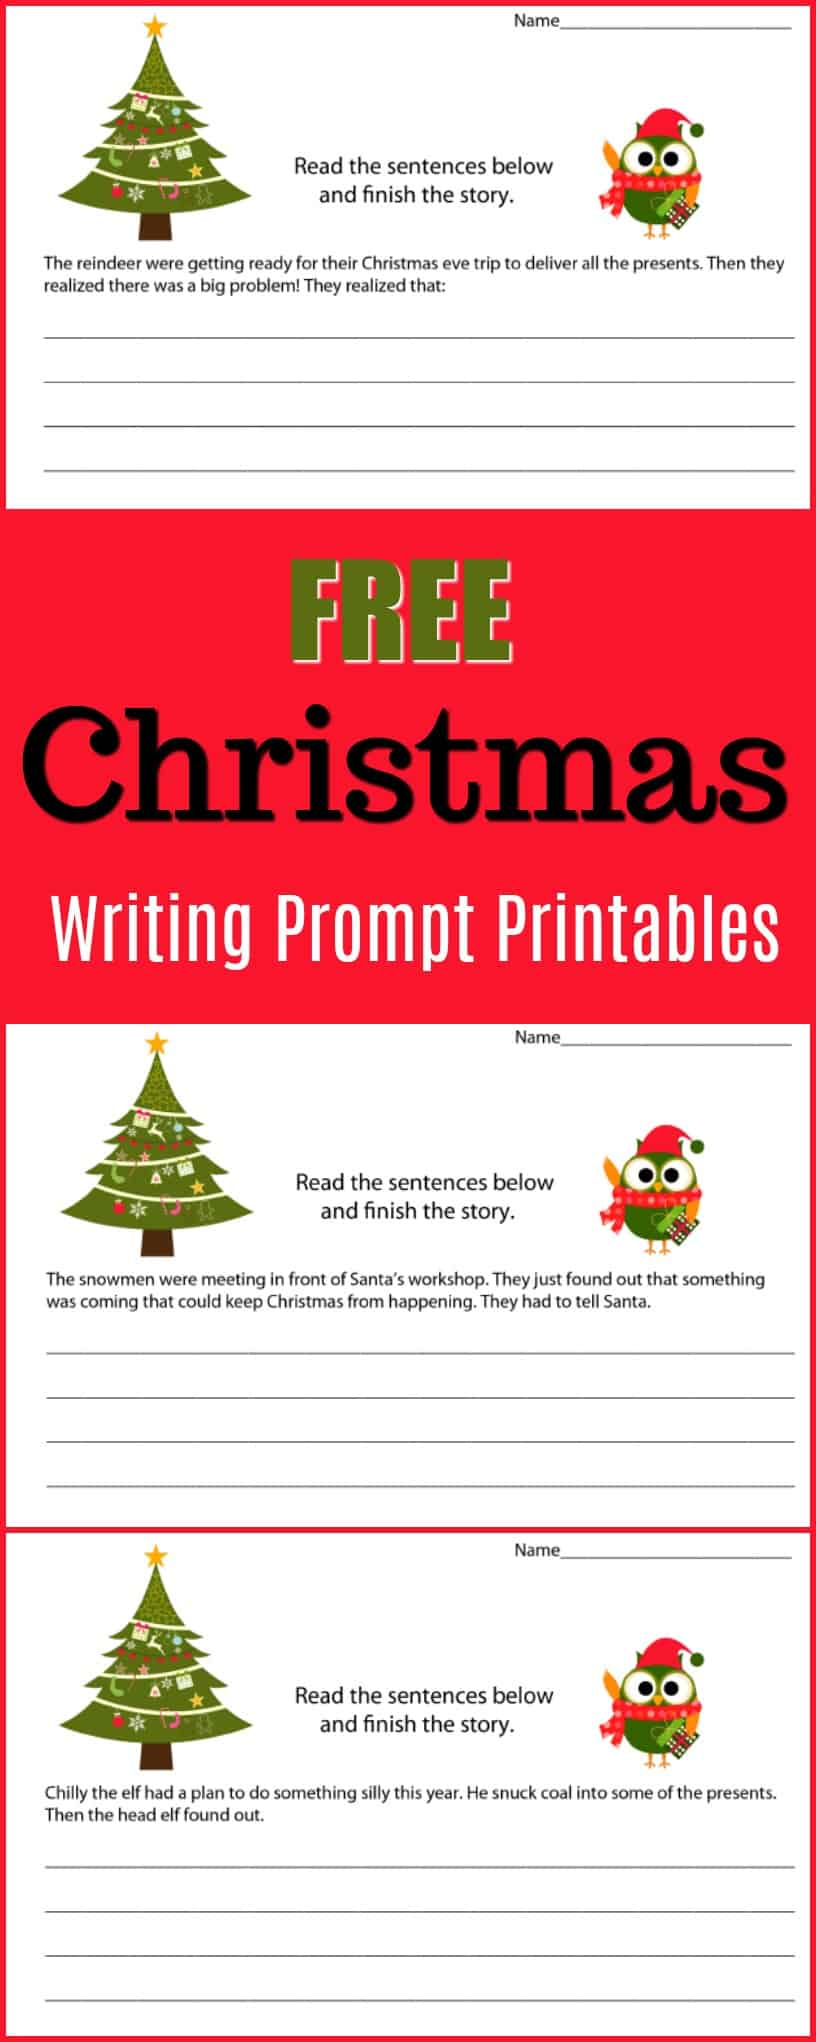 Free Christmas Writing Prompt Printables - Get kids writing stories with these fun Christmas writing prompts. The free printables are perfect for a classroom Christmas project or for a homeschool Christmas writing assignment. They would also make a fun holiday writing project. - #holiday #writing #writingprompt #holiday #printable #freeprintable #education #edchat #homeschool #homeschooling #christmas